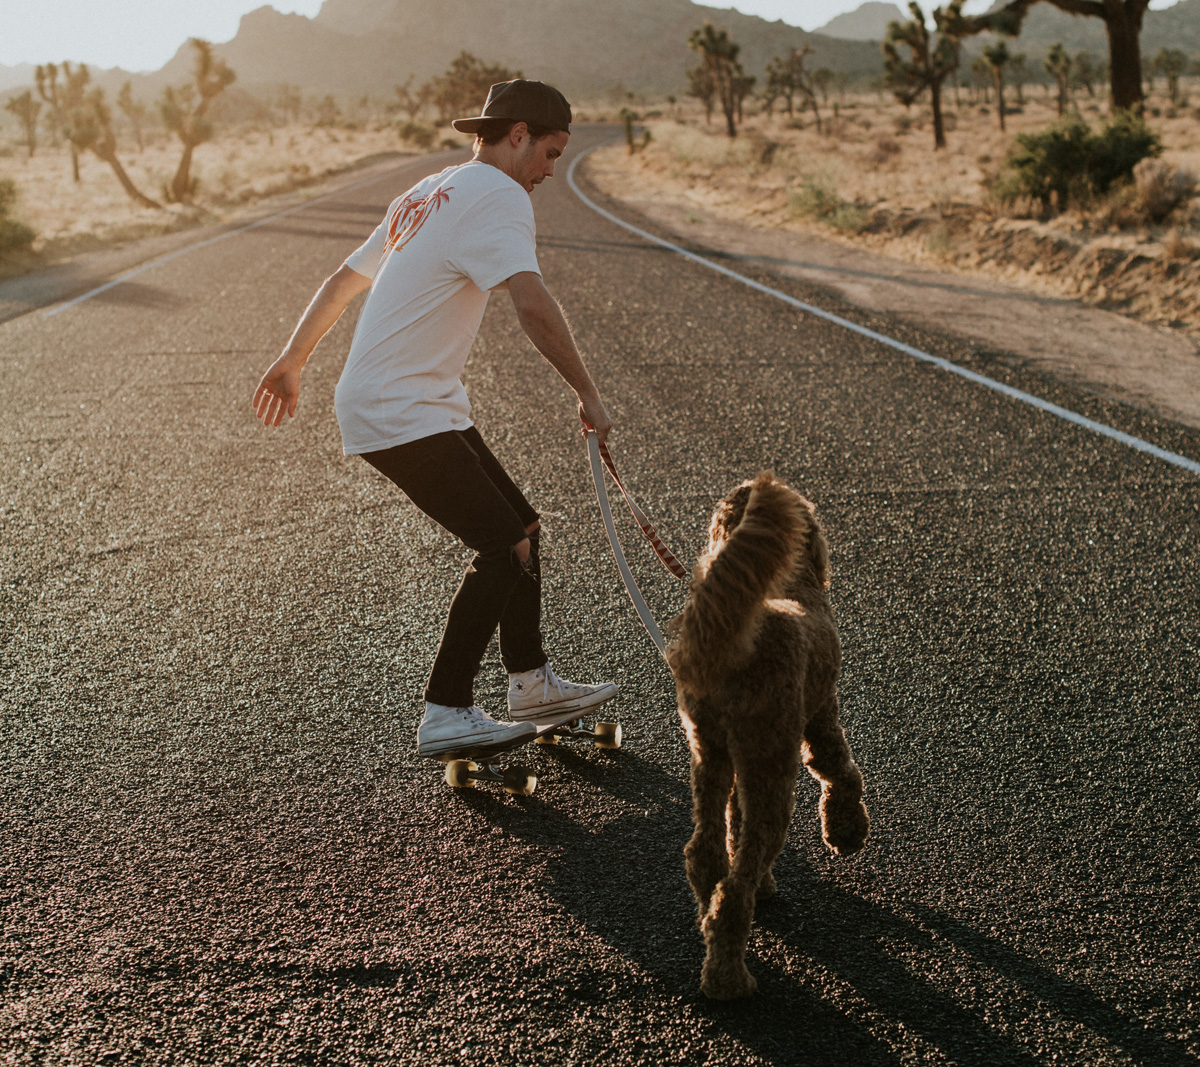 Picture of man skateboarding with dog on leash beside him.